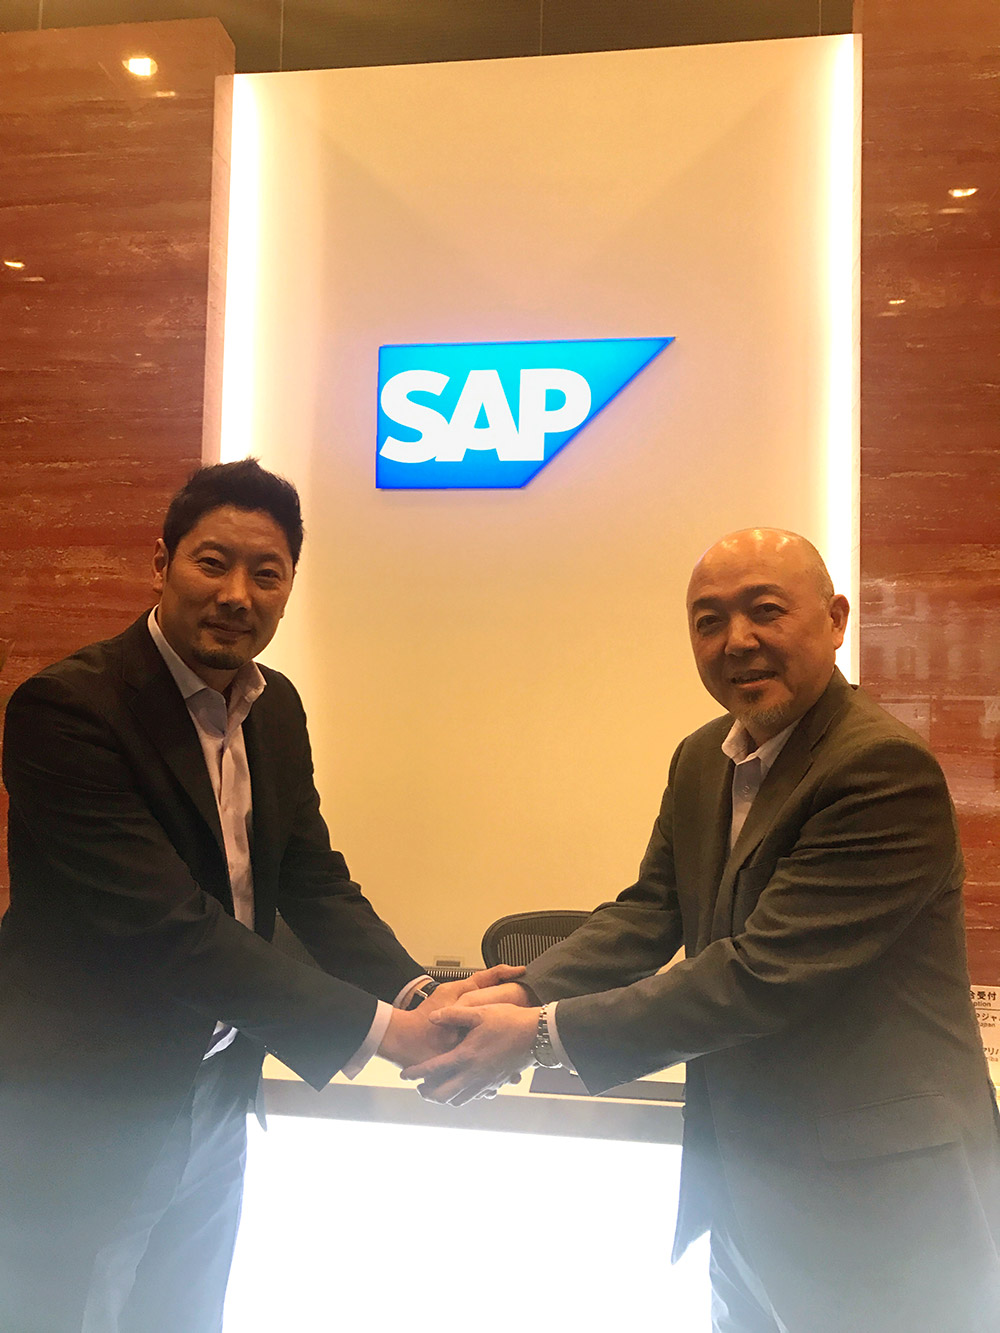 Atsushi Koshio, VP and Head of Education, SAP Japan and Chenda Wangchen, K2 Head of Region, APJ